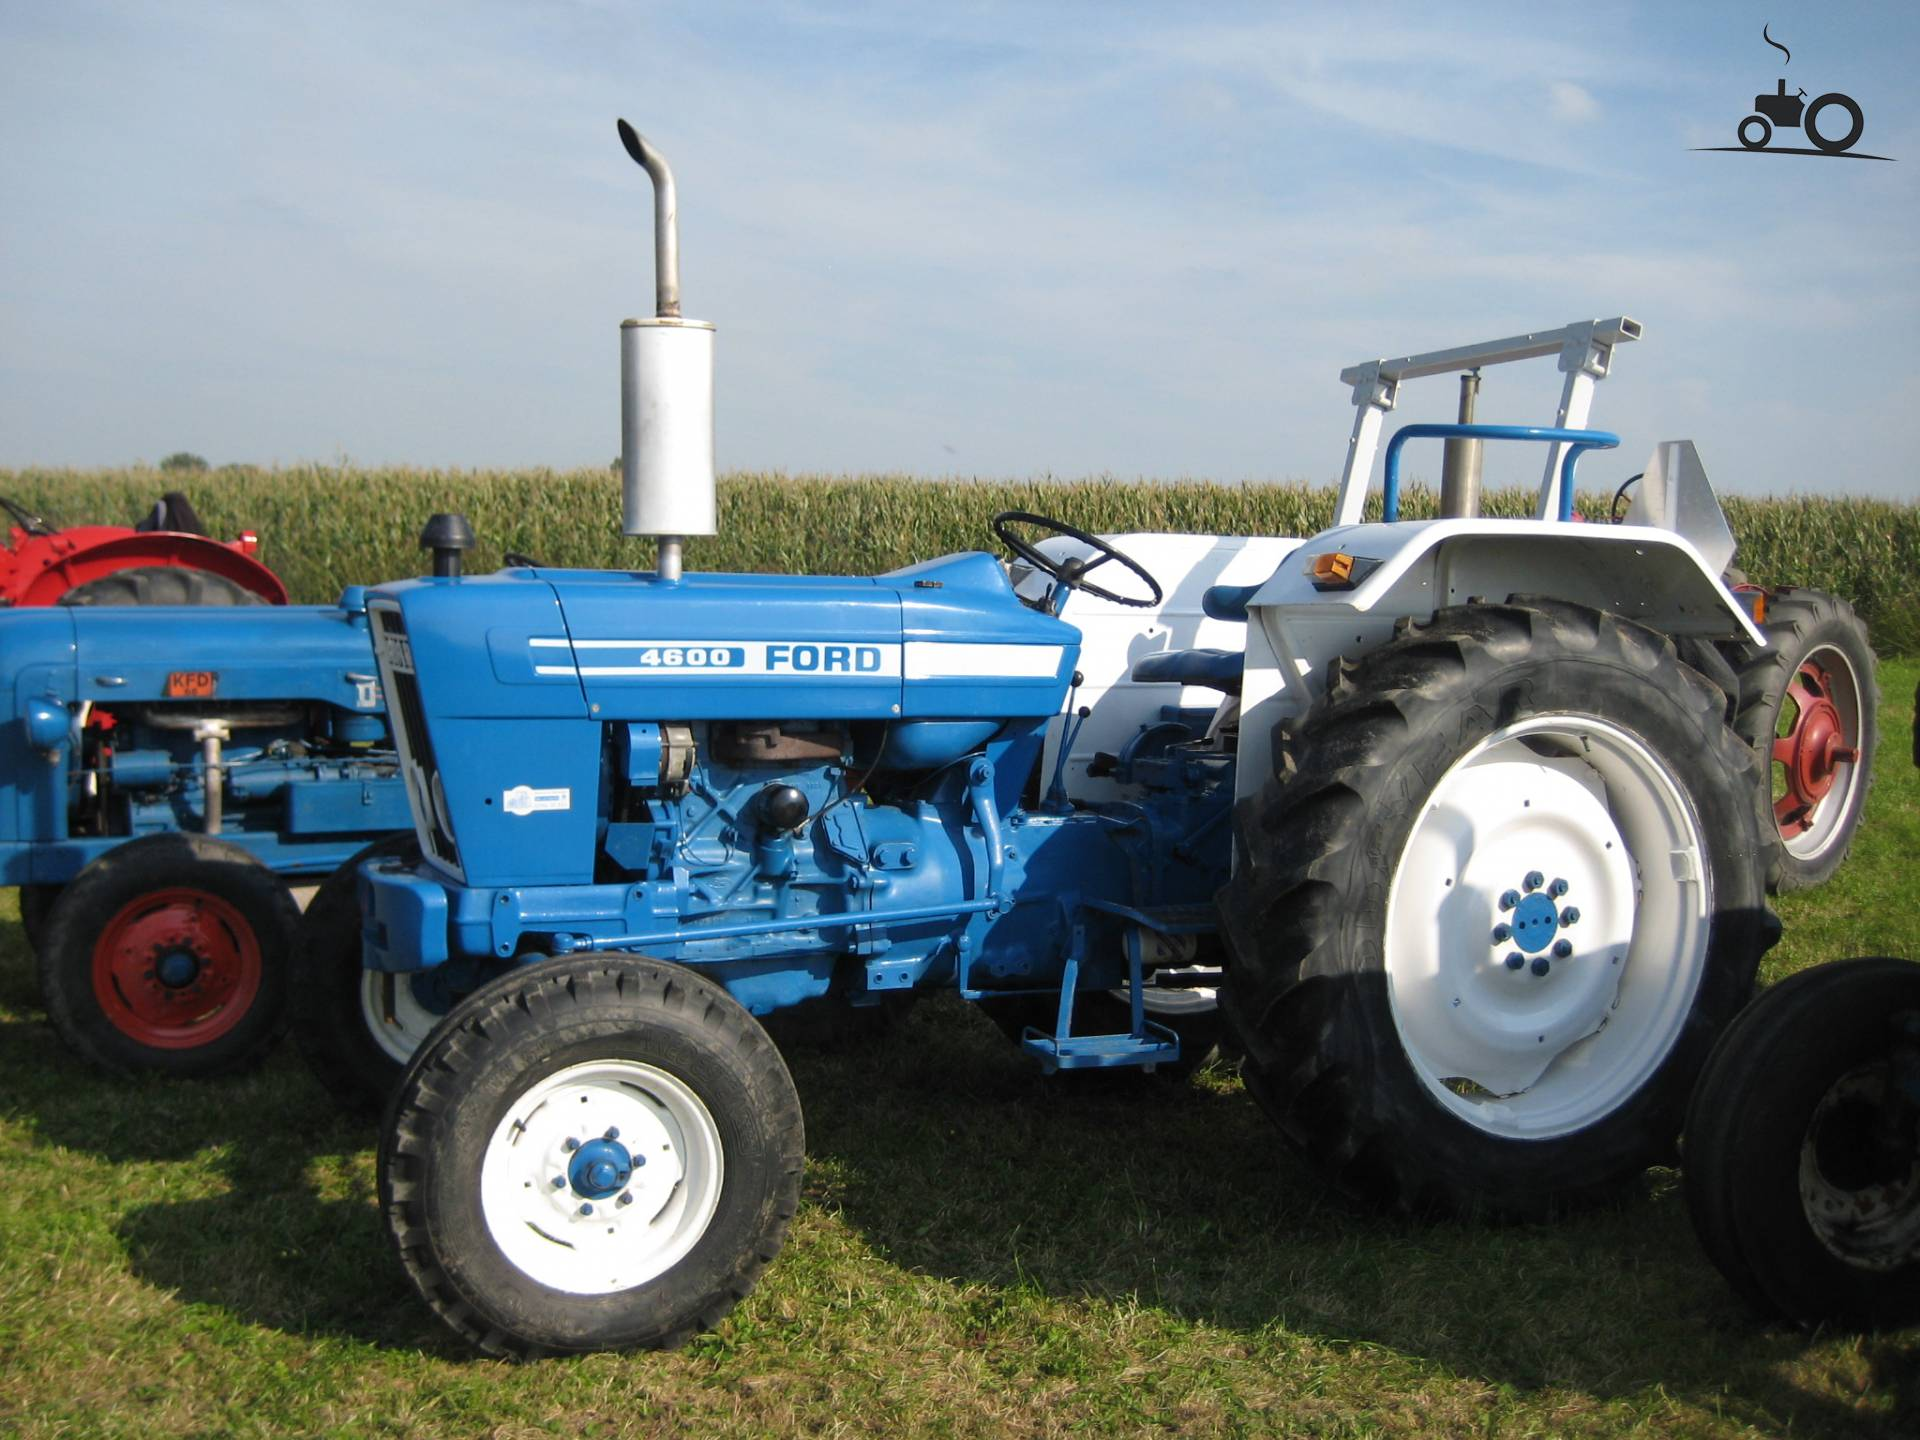 Ford 4600 Tractor Information : Ford